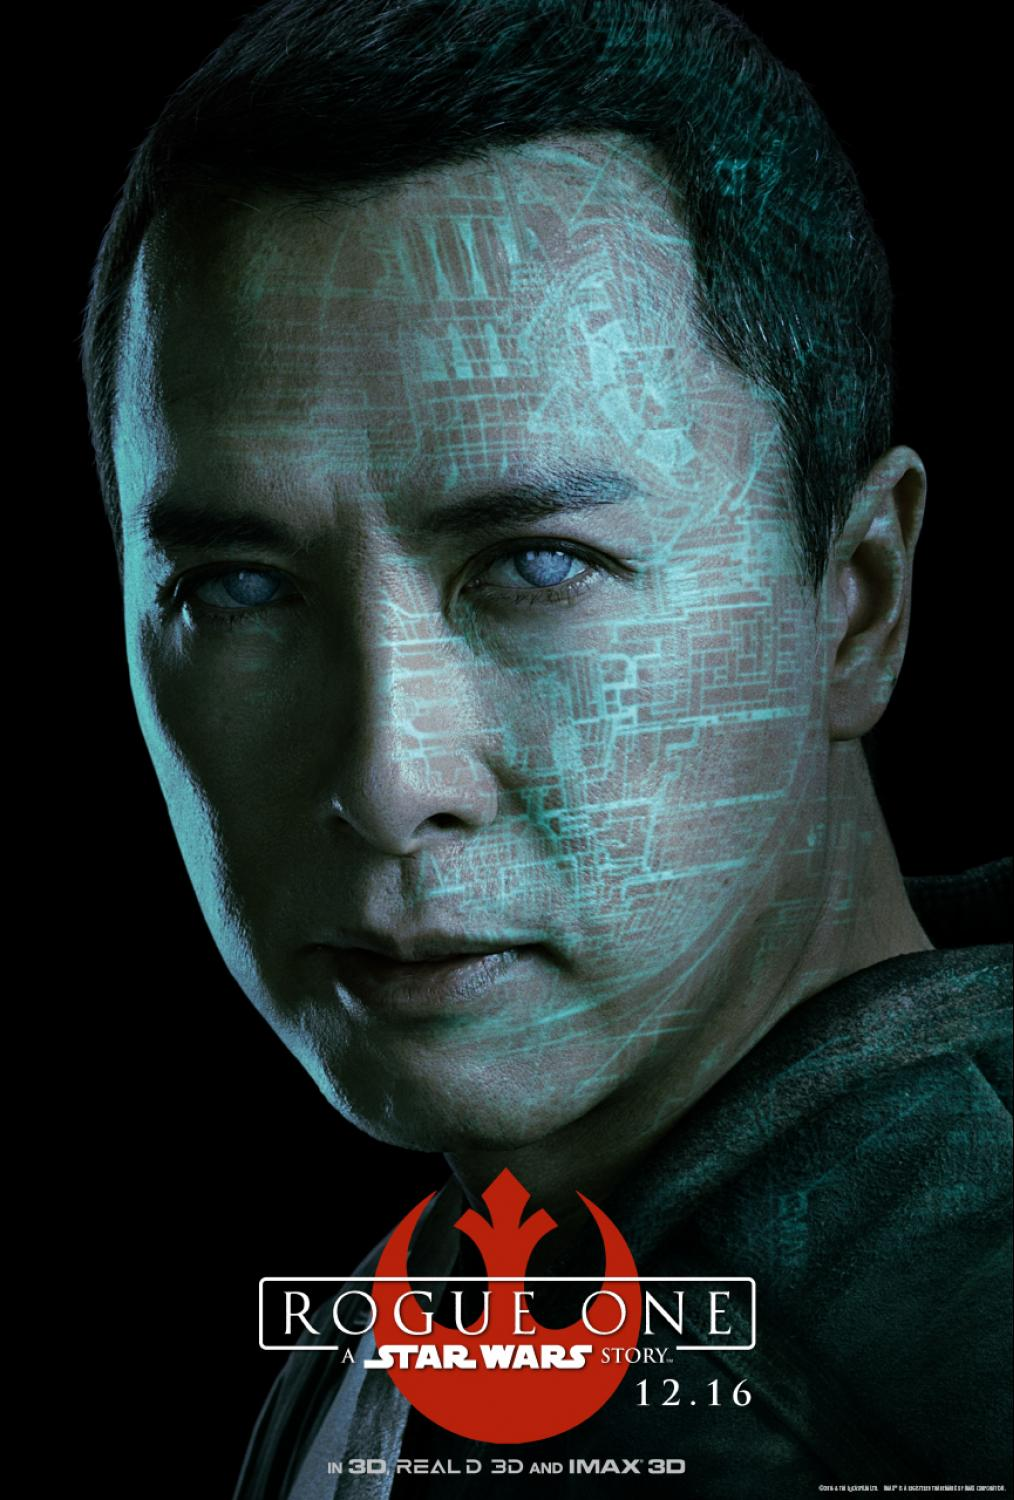 Chirrut Îmwe - ROGUE ONE: A STAR WARS STORY